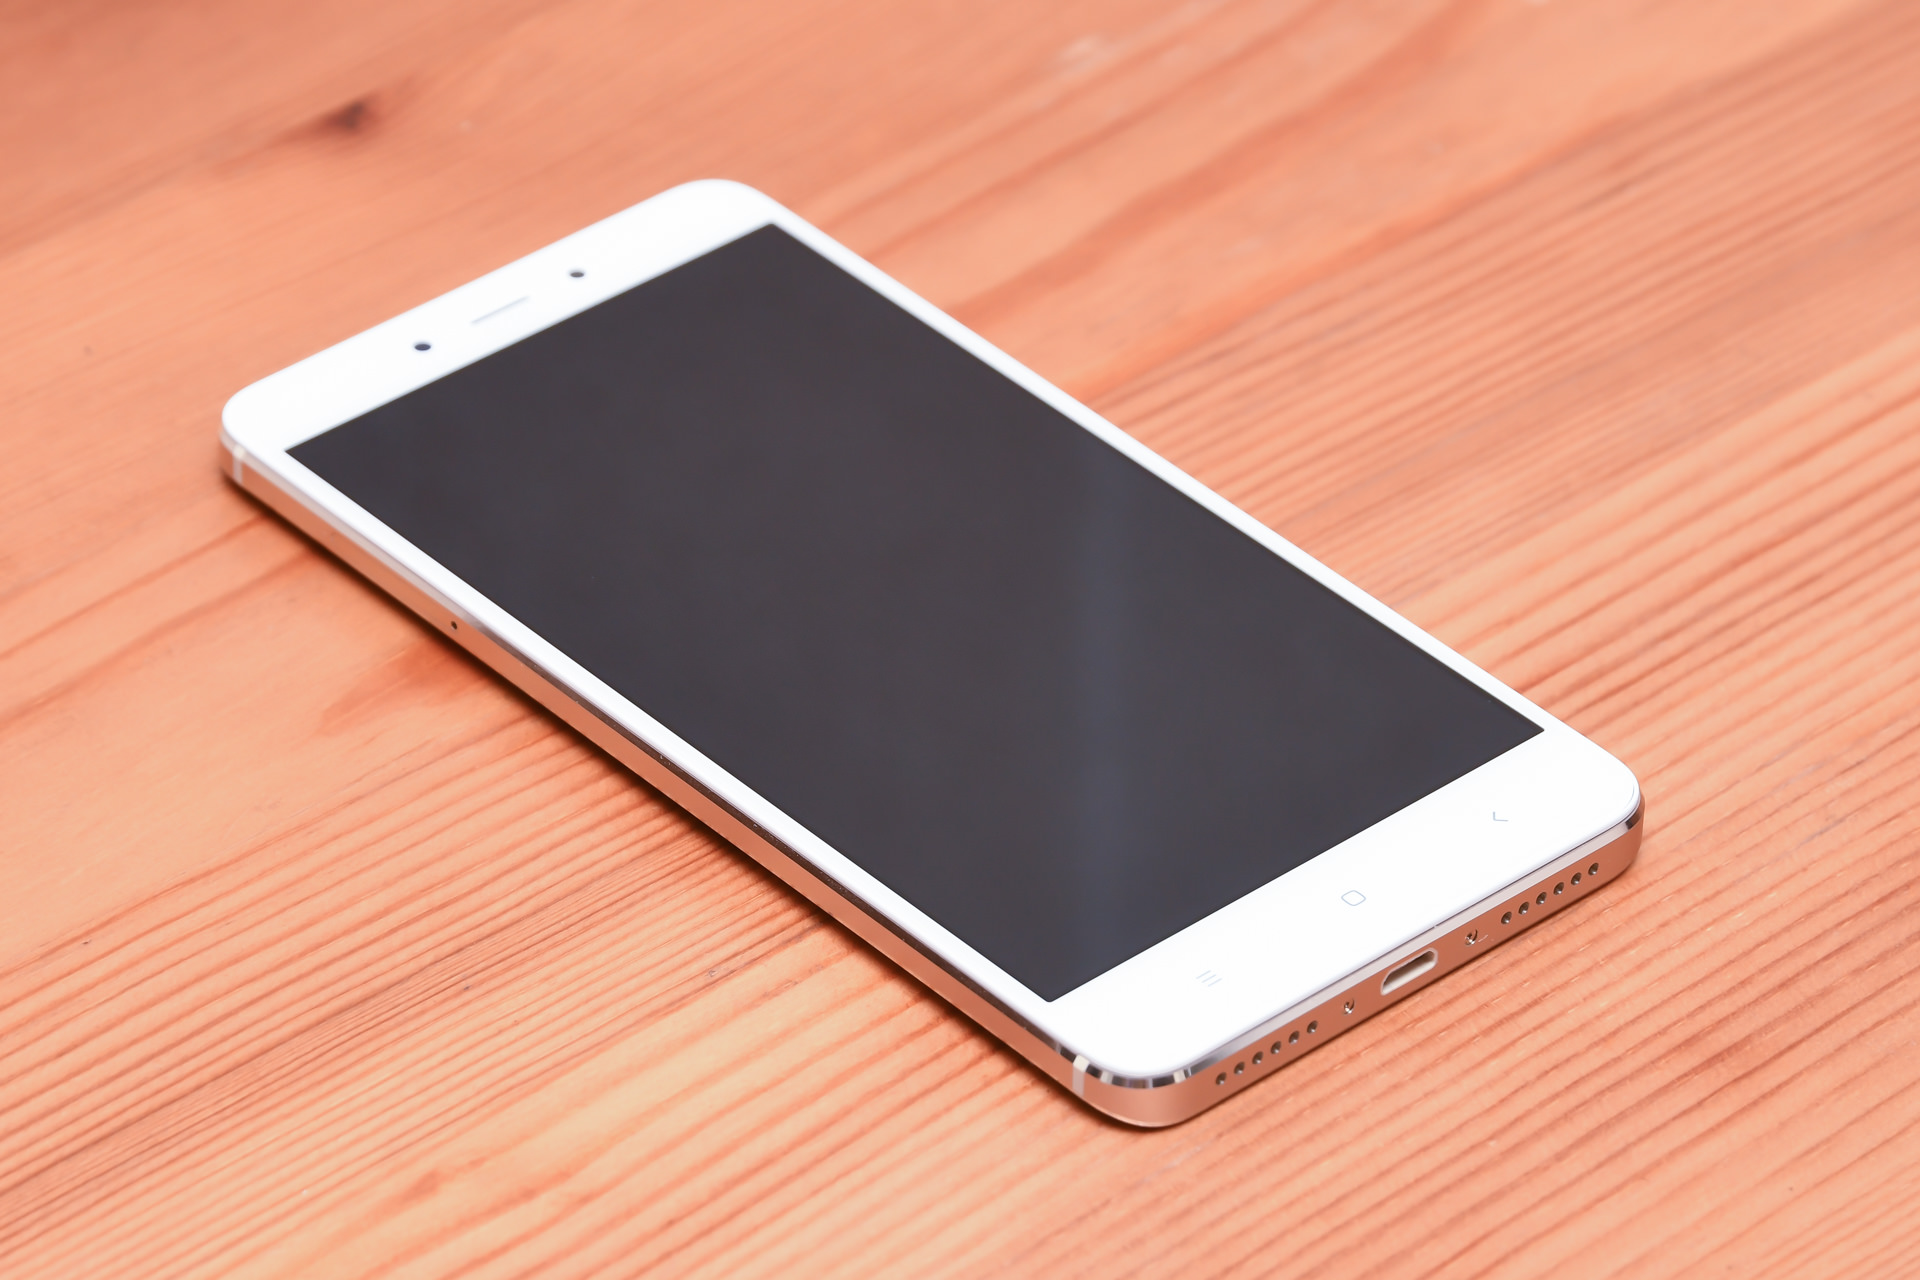 xiaomi redmi note 4 10